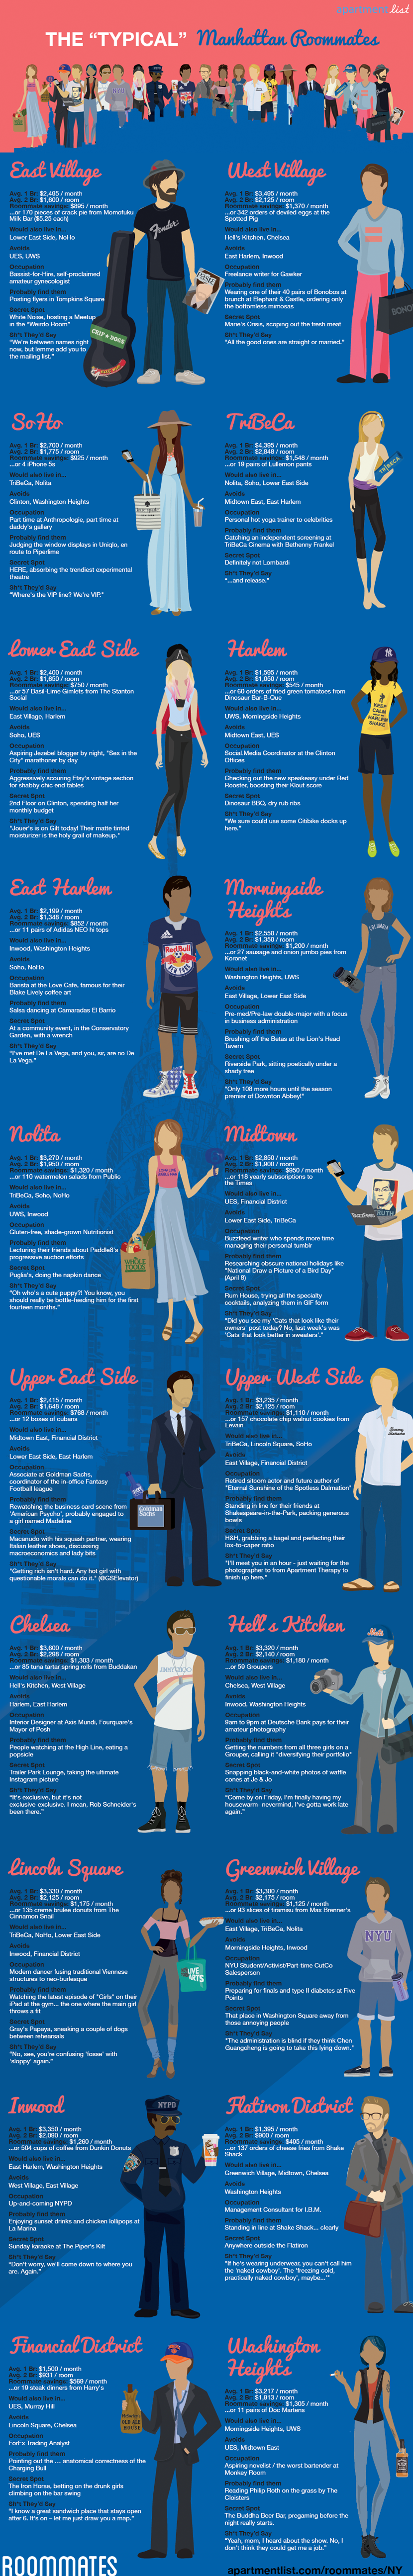 hilarious infographic of manhattan neighborhood stereotypes is